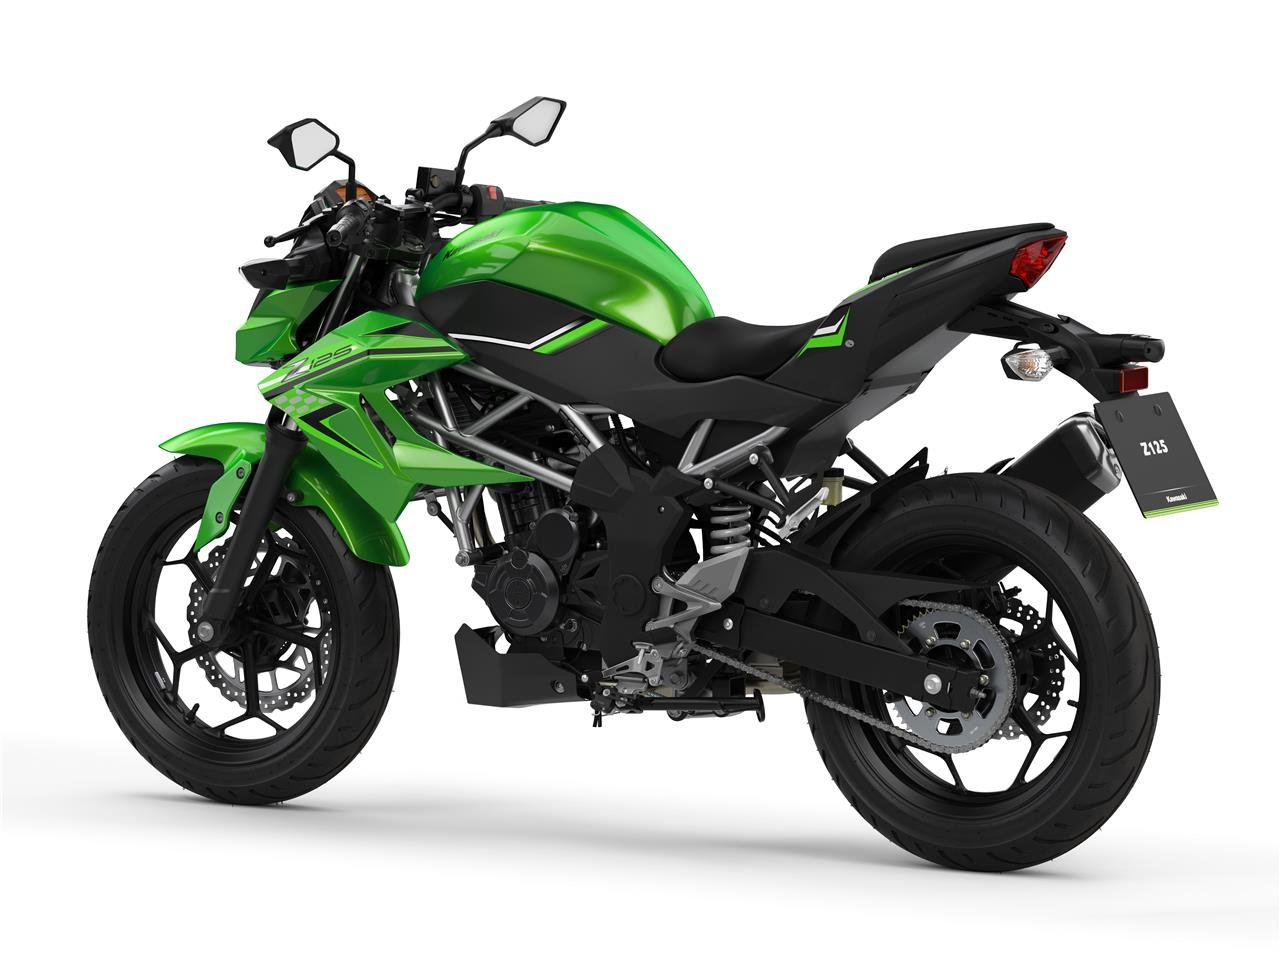 New 2021 Kawasaki Z 125 ABS Green For Sale (picture 4 of 6)